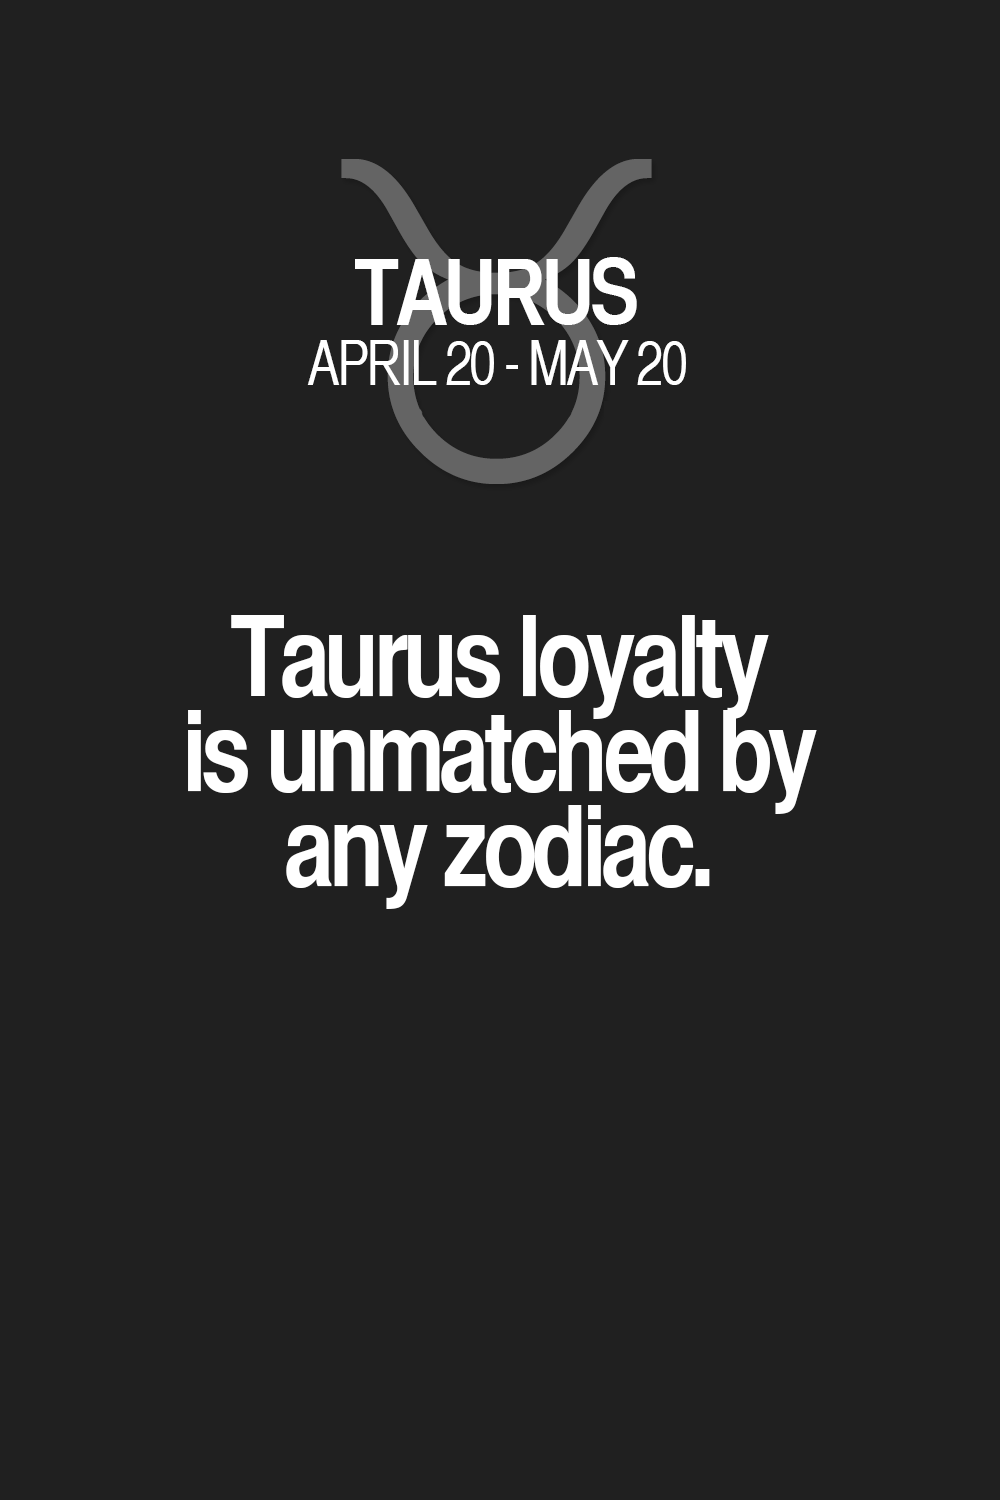 Taurus loyalty is unmatched by any zodiac. Taurus | Taurus Quotes | Taurus Zodiac Signs